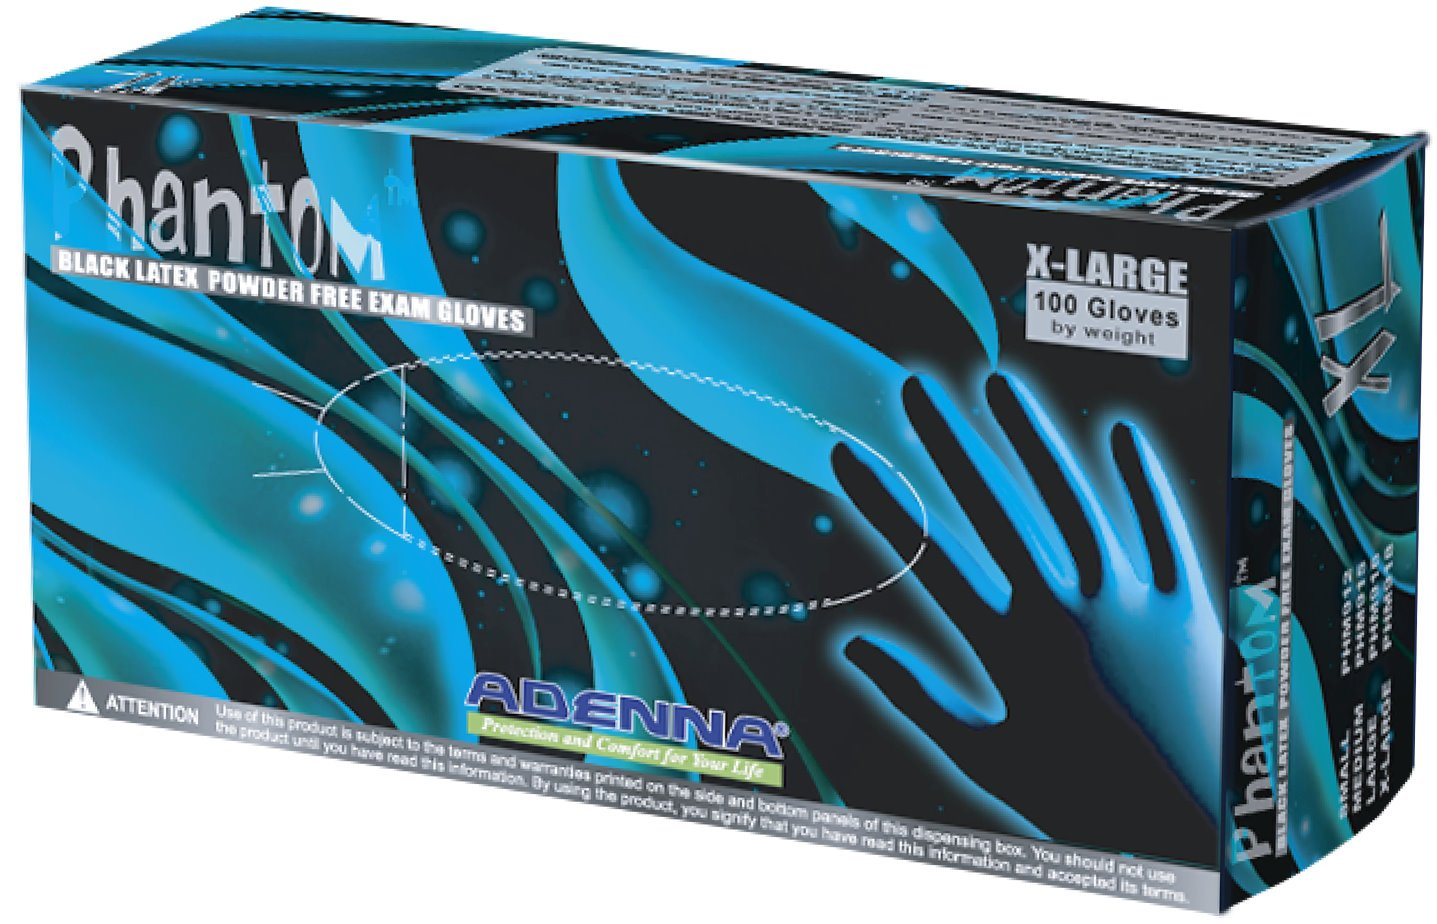 Phantom Black Latex Gloves- Examination Grade (Case of 10 boxes- Medium)